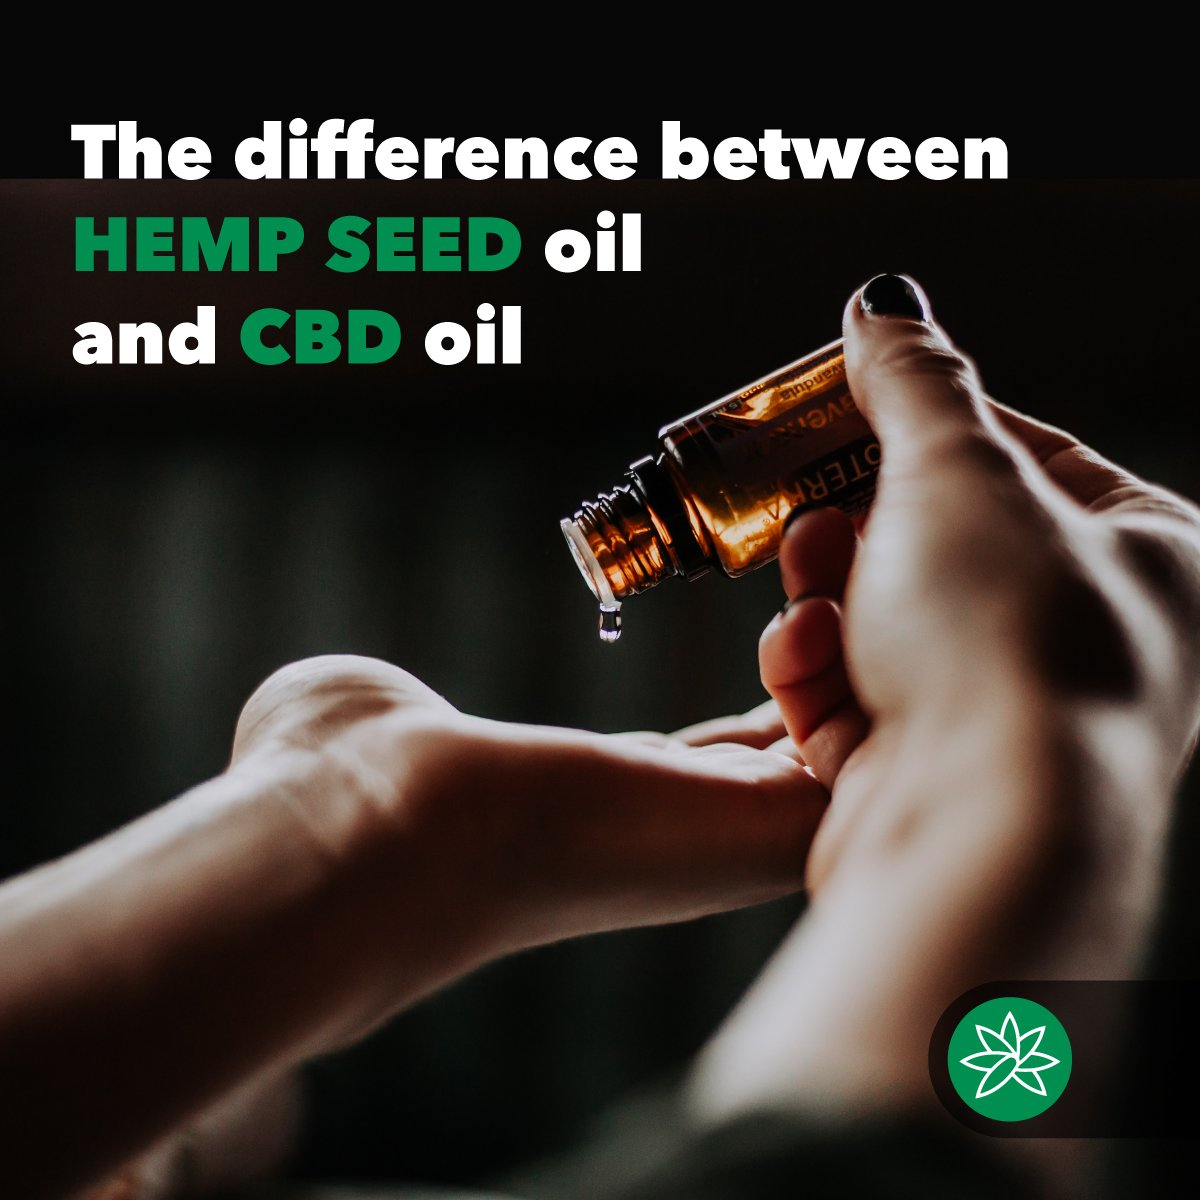 The difference between hemp seed oil and CBD oil